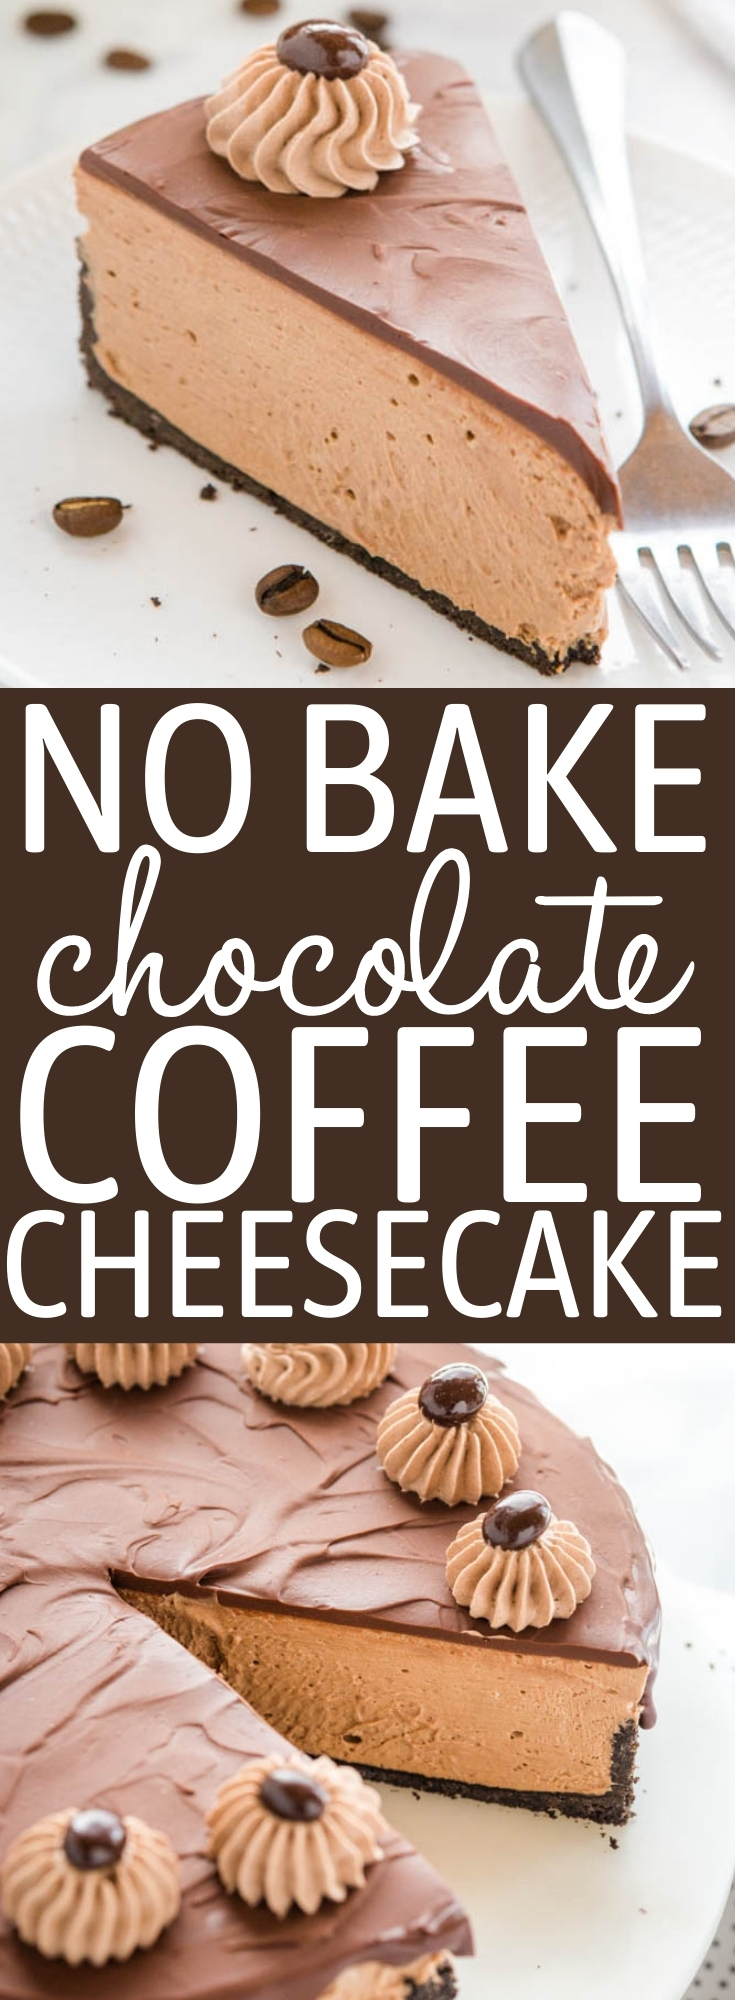 No Bake Chocolate Coffee Cheesecake Recipe Pinterest